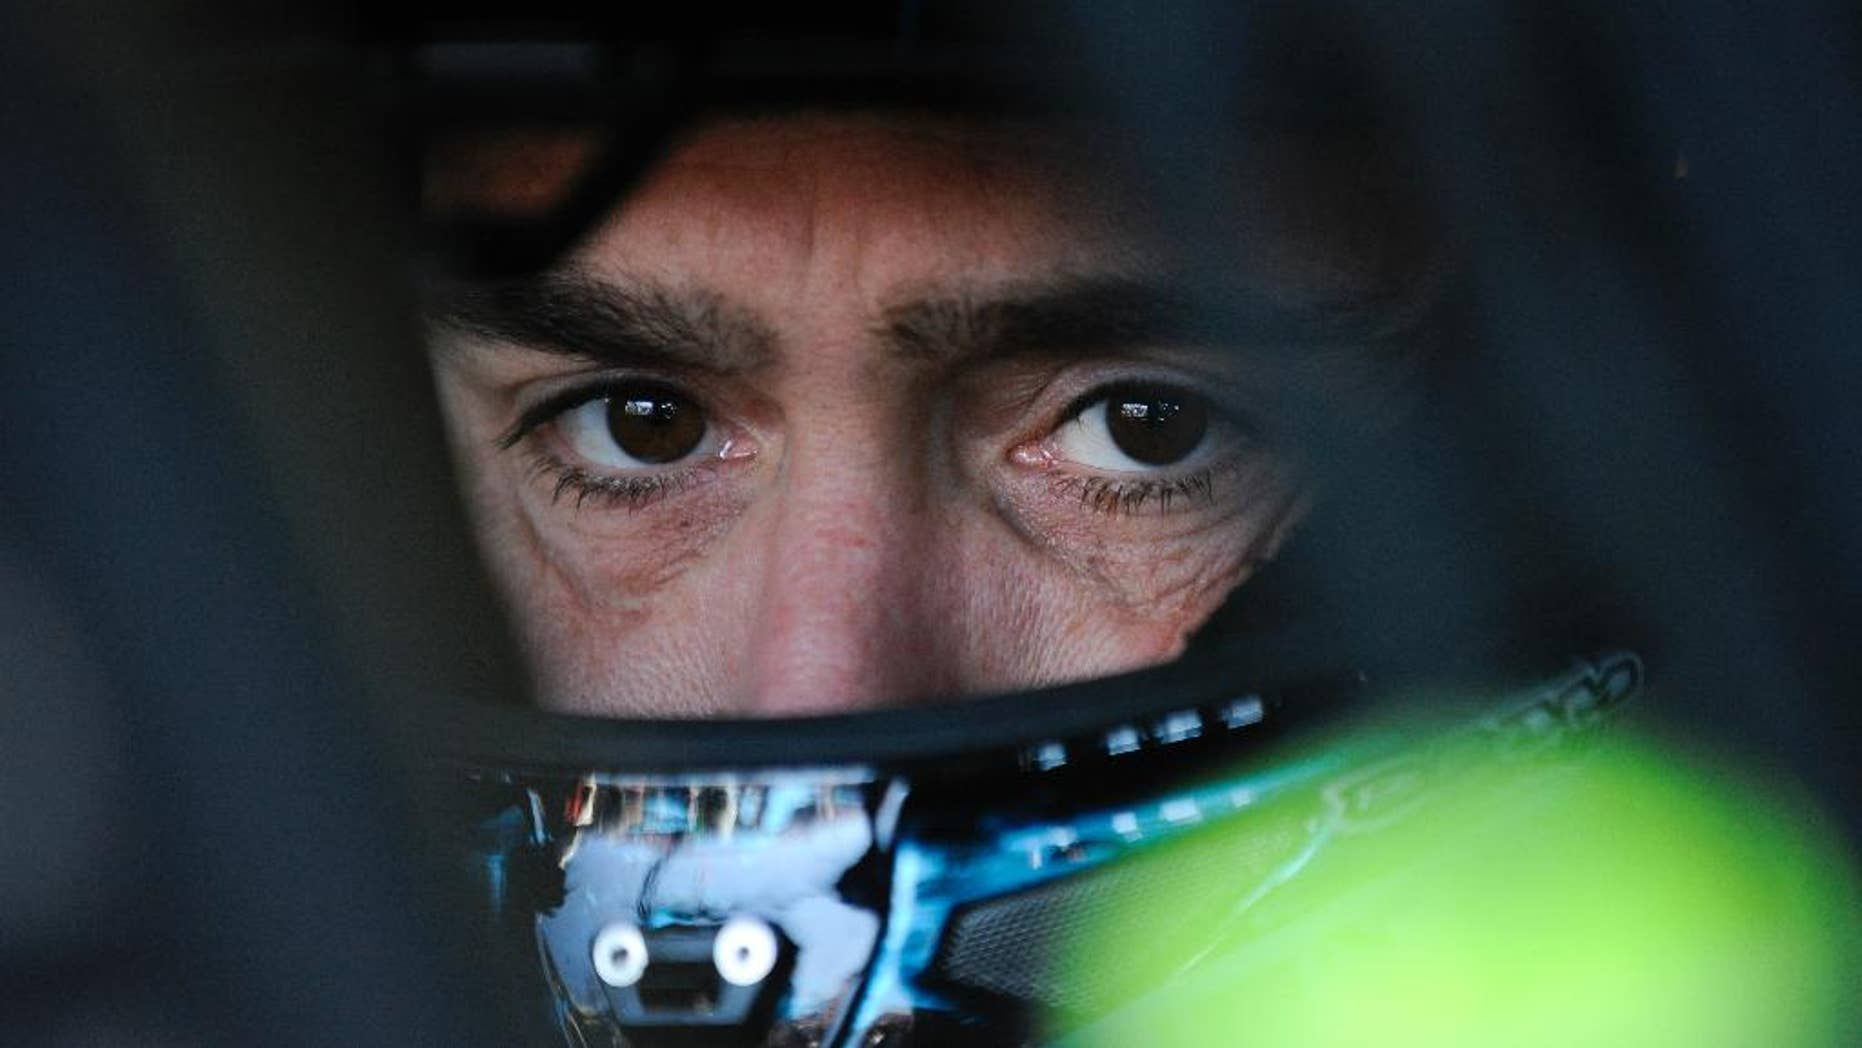 NASCAR driver Jimmie Johnson sits in his car as he waits to practice for Sunday's NASCAR Sprint Cup Series auto race at Talladega Superspeedway Friday, Oct. 17, 2014, in Talladega, Ala.  Johnson has one shot to keep his bid for a record-tying seventh championship going. The defending NASCAR champion must win at Talladega to avoid elimination from the Chase. (AP Photo/Rainier Ehrhardt)